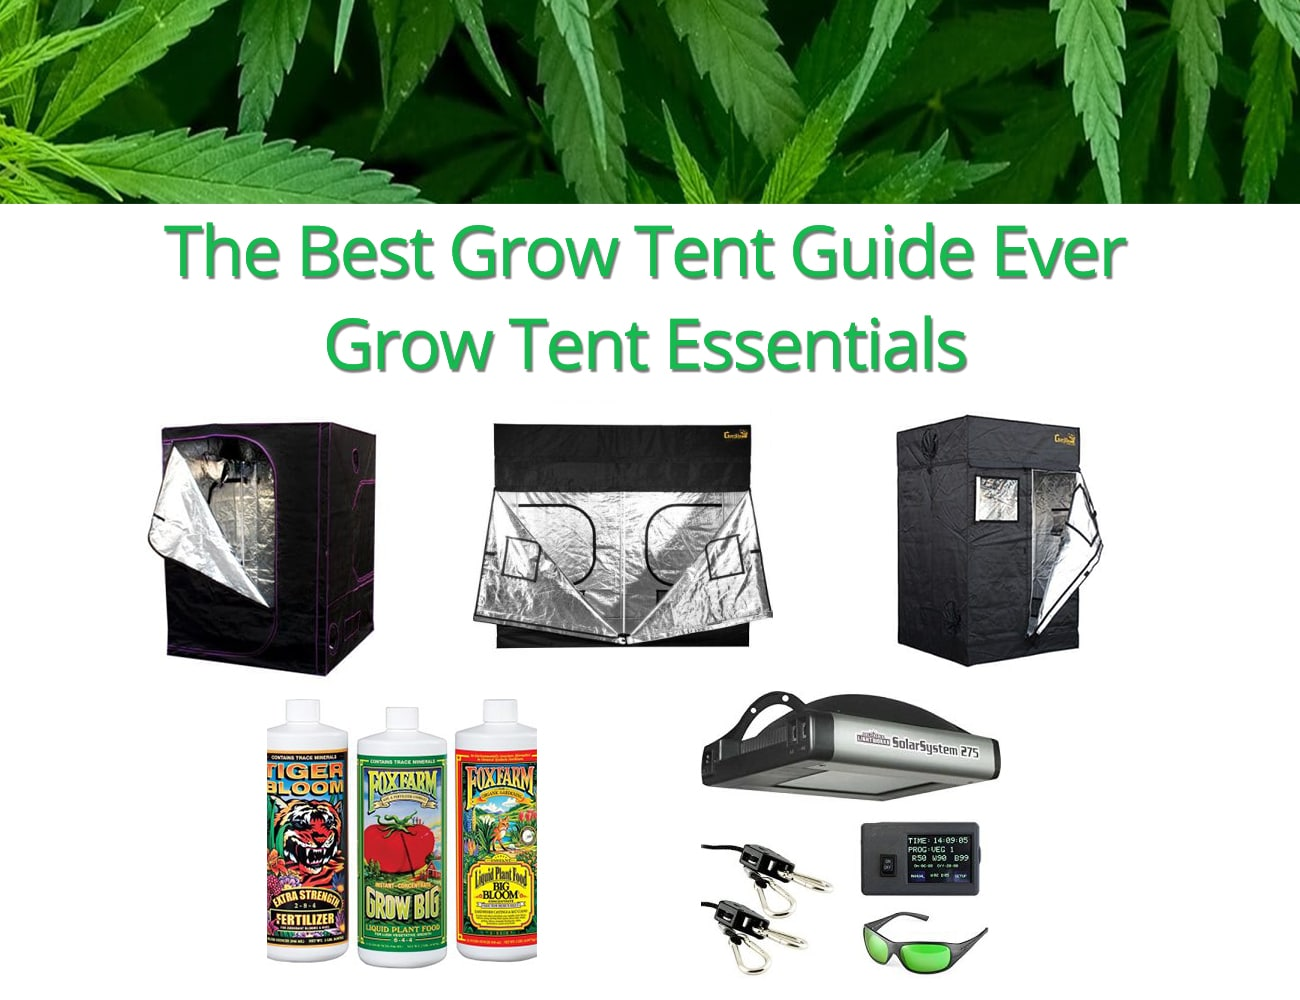 The Best Grow Tent Guide Ever – Grow Tent Essentials